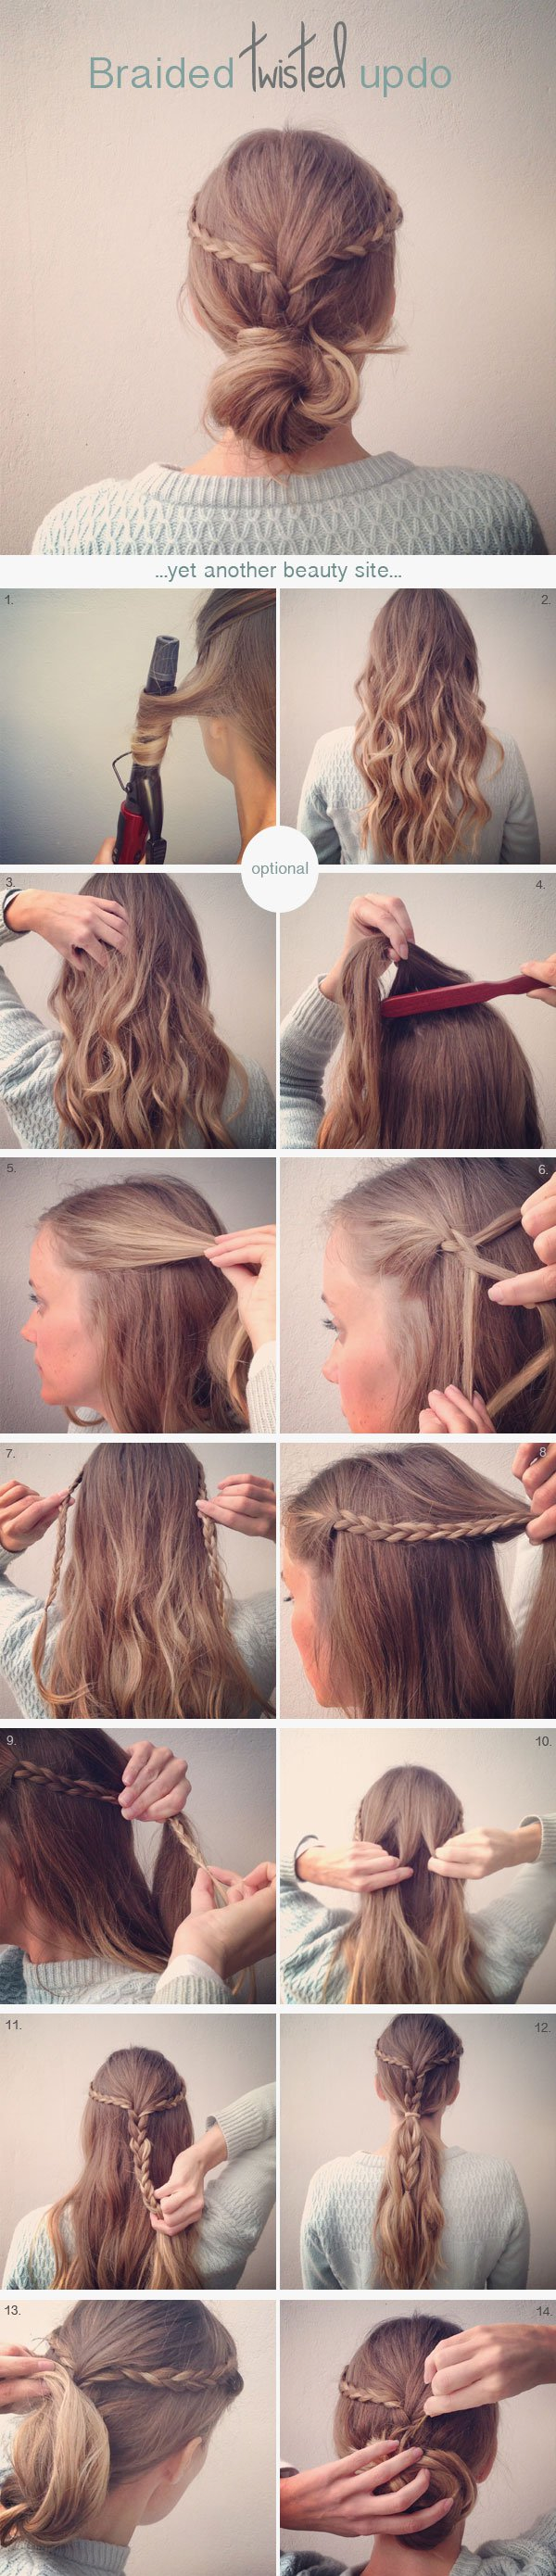 Loose Twisted Updo with Braid